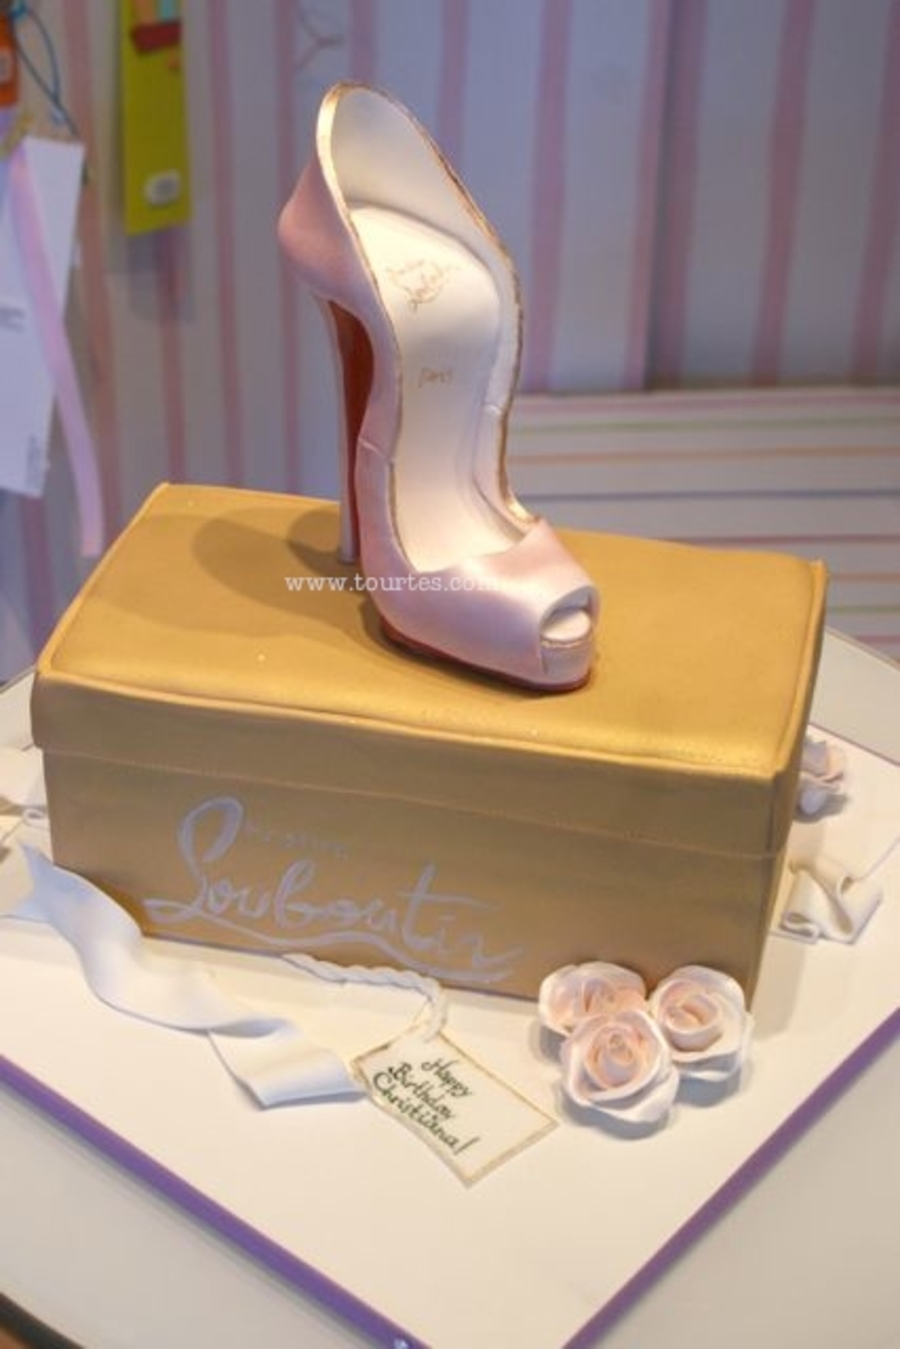 Cake And Sugar Louboutin Shoe ( I Guess Size 36 Could Actually Wear It.) on Cake Central